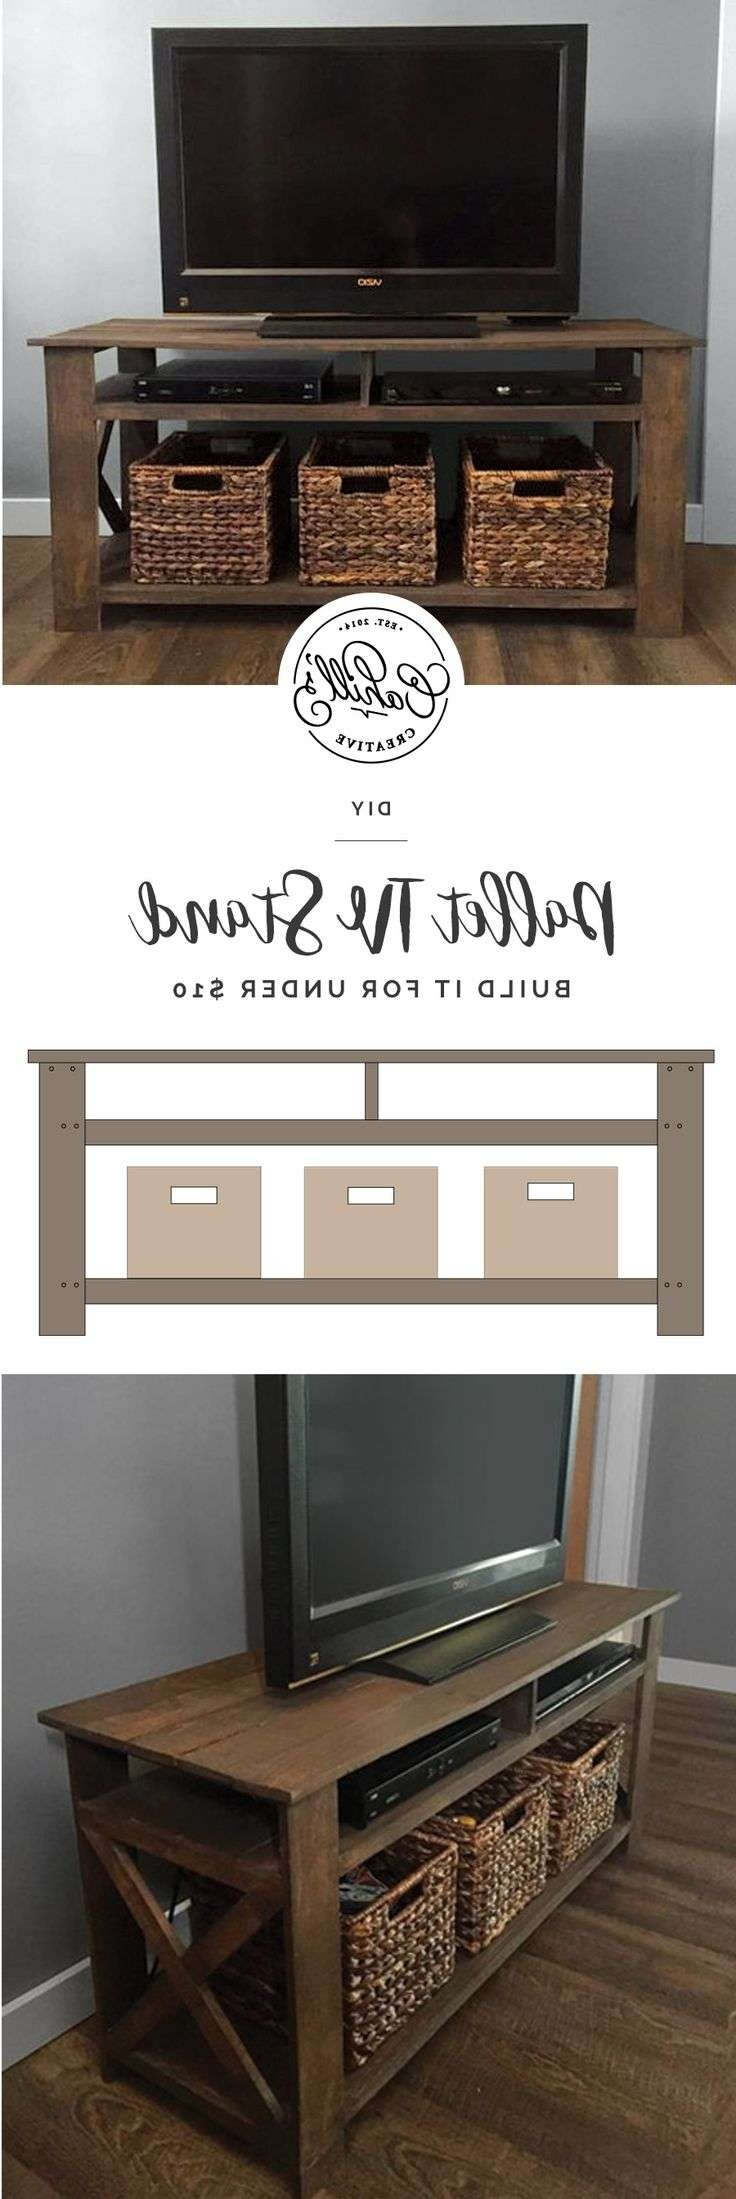 Best 25+ Tv Stands Ideas On Pinterest | Diy Tv Stand, Tv Stand Within Tv Stands 38 Inches Wide (View 15 of 15)